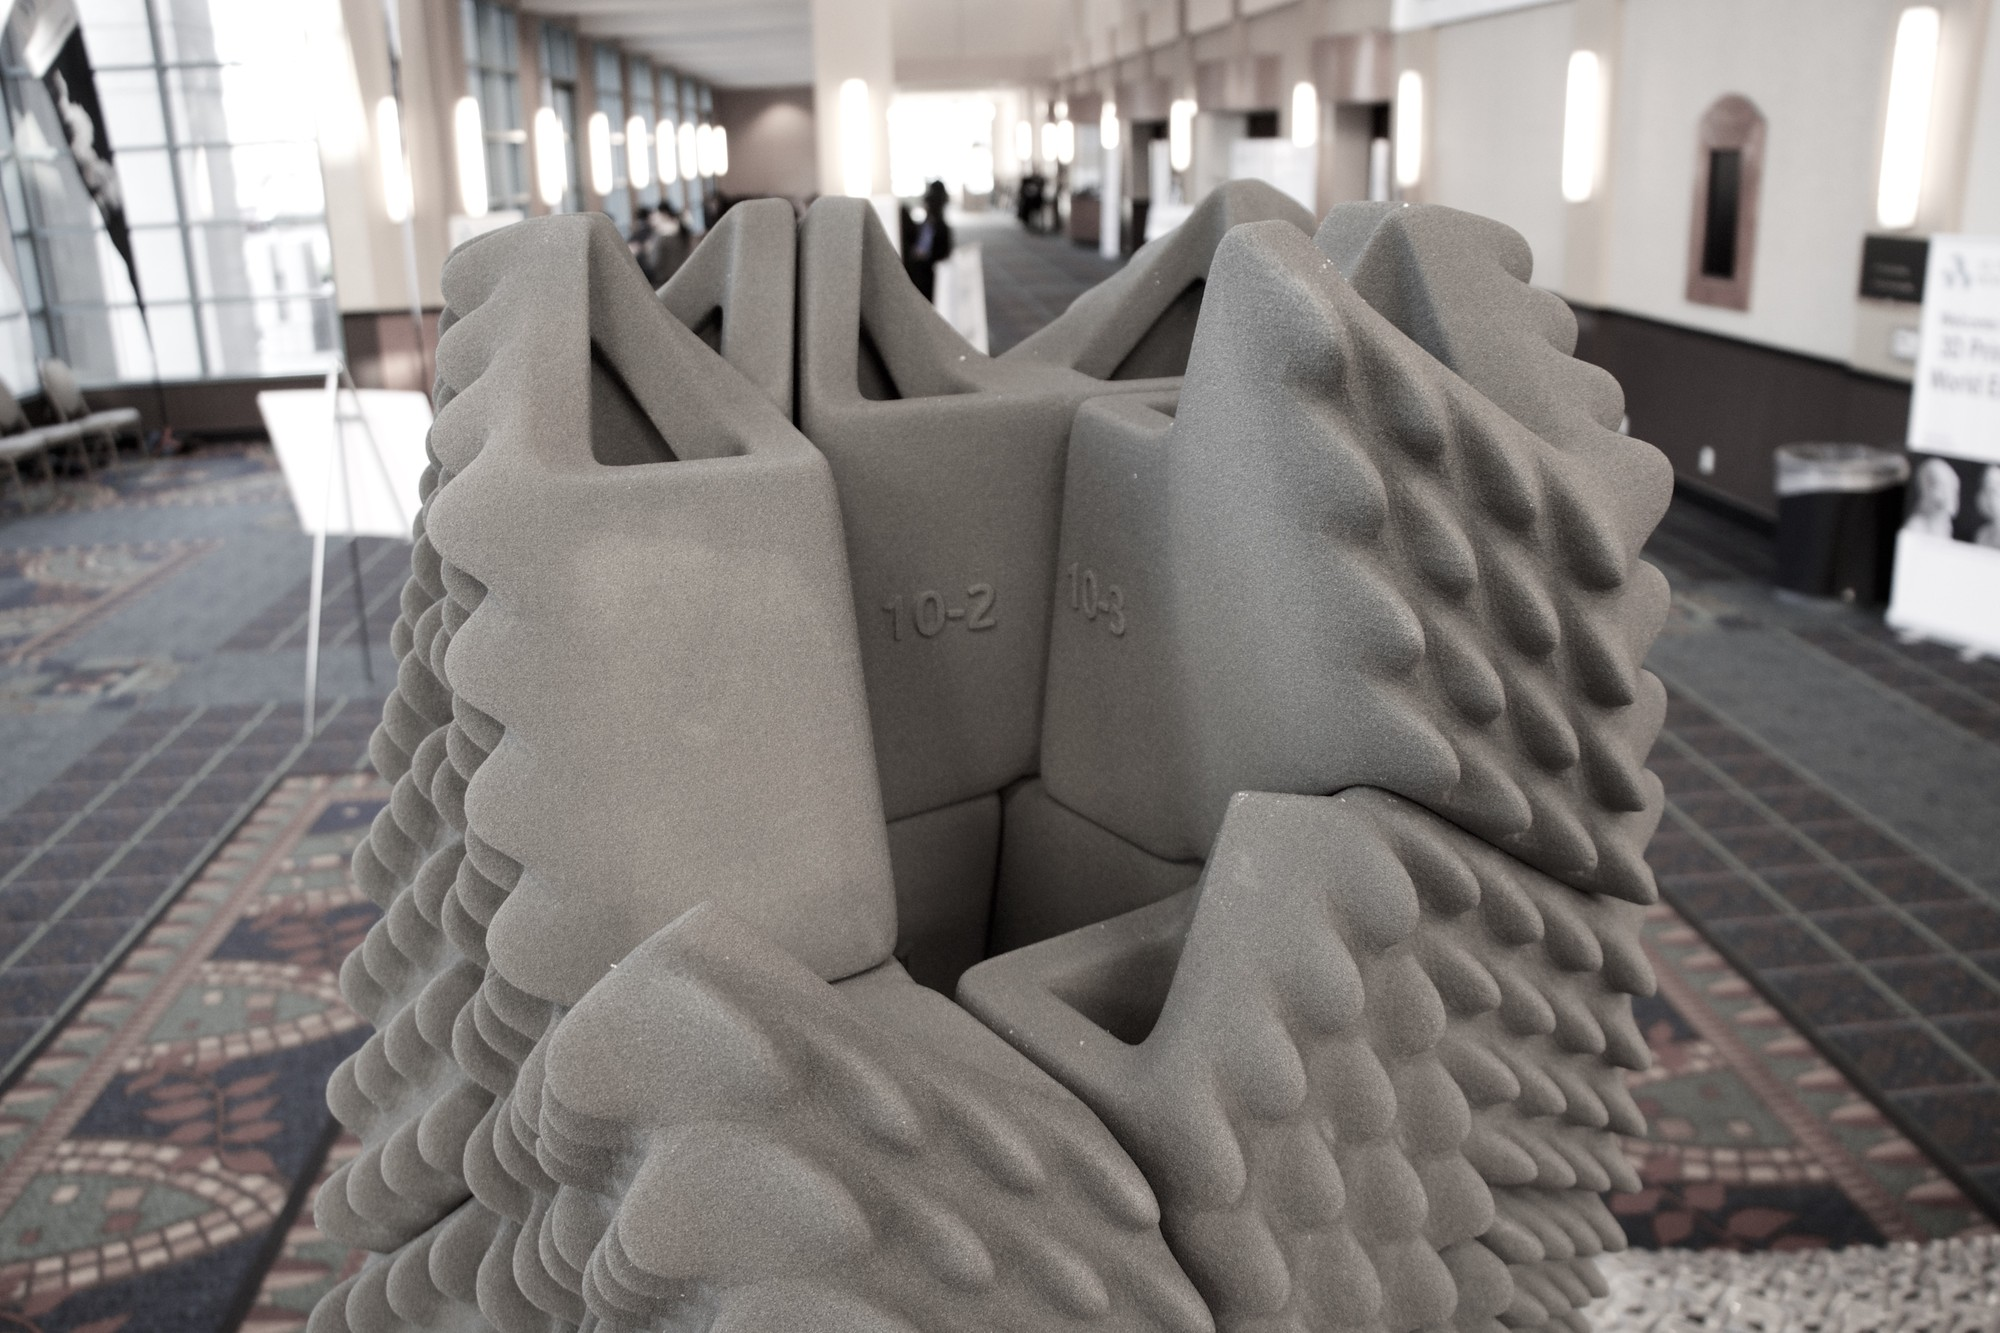 Emerging Objects Invents Earthquake-Proof 3D Printed Column, Courtesy of Emerging Objects